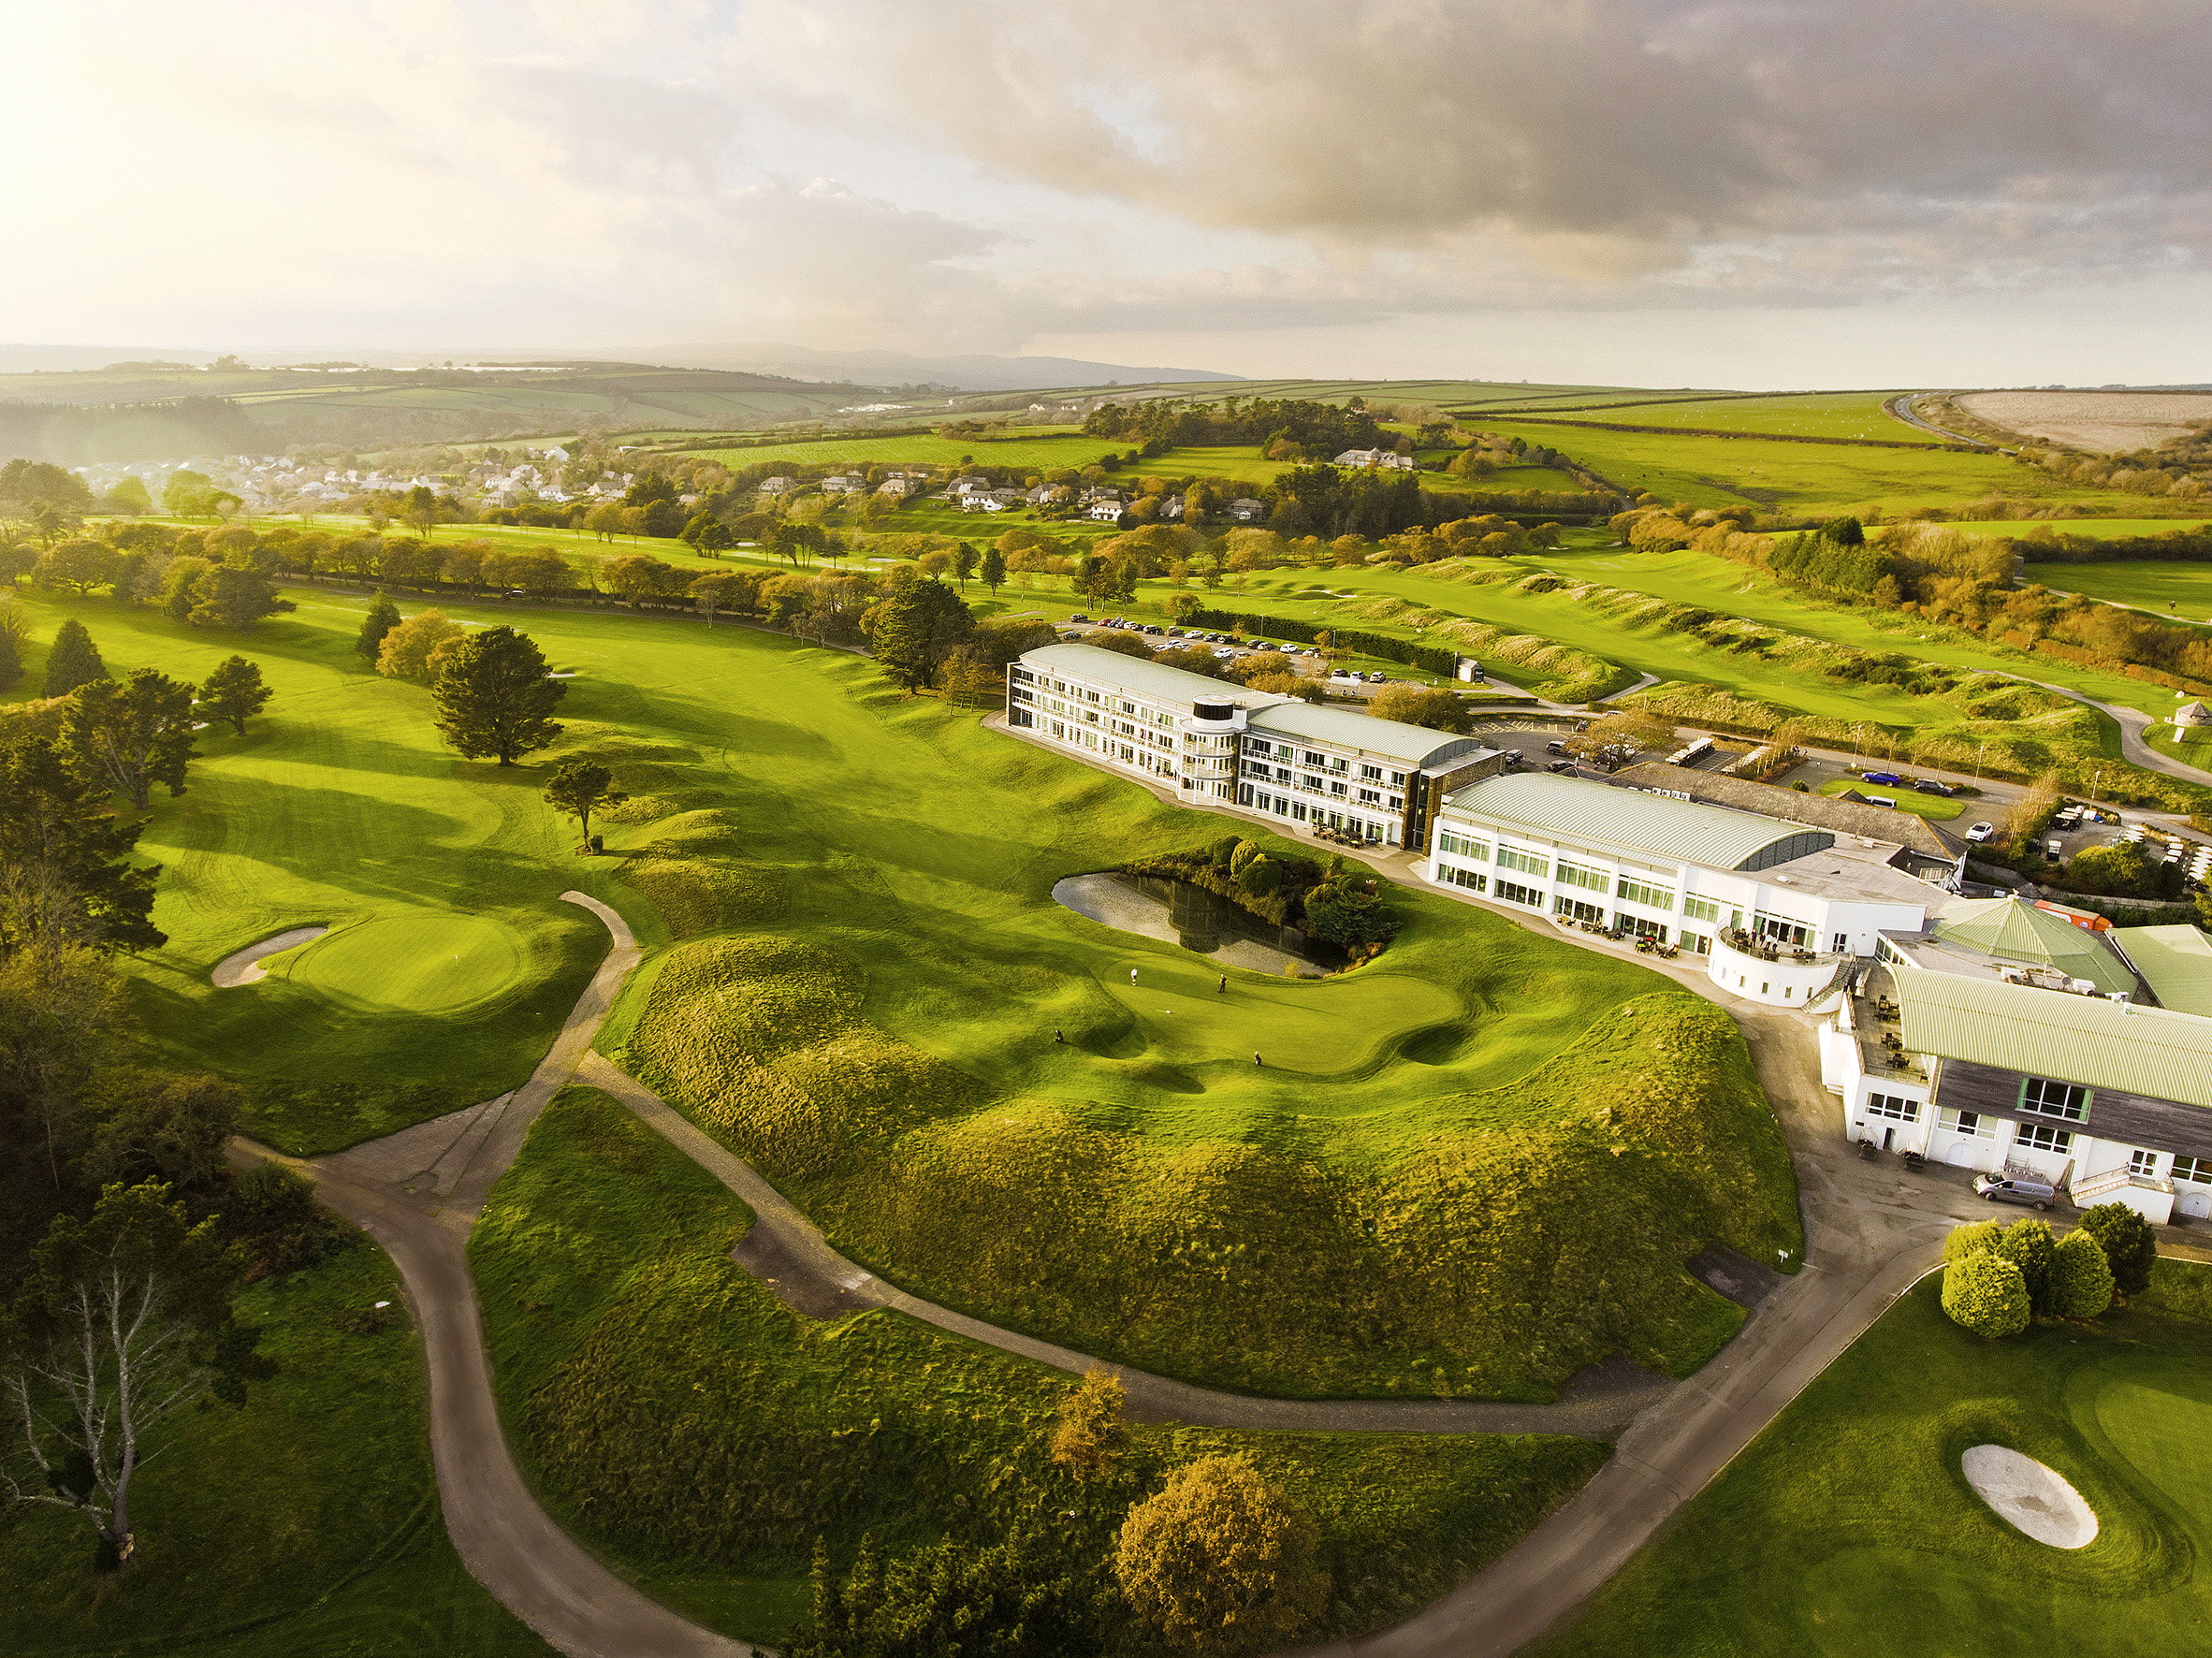 St Mellion, with its Nicklaus and Kernow courses, is an ideal golf break in its own  right or a great place to base yourself for a Cornish golf adventure.